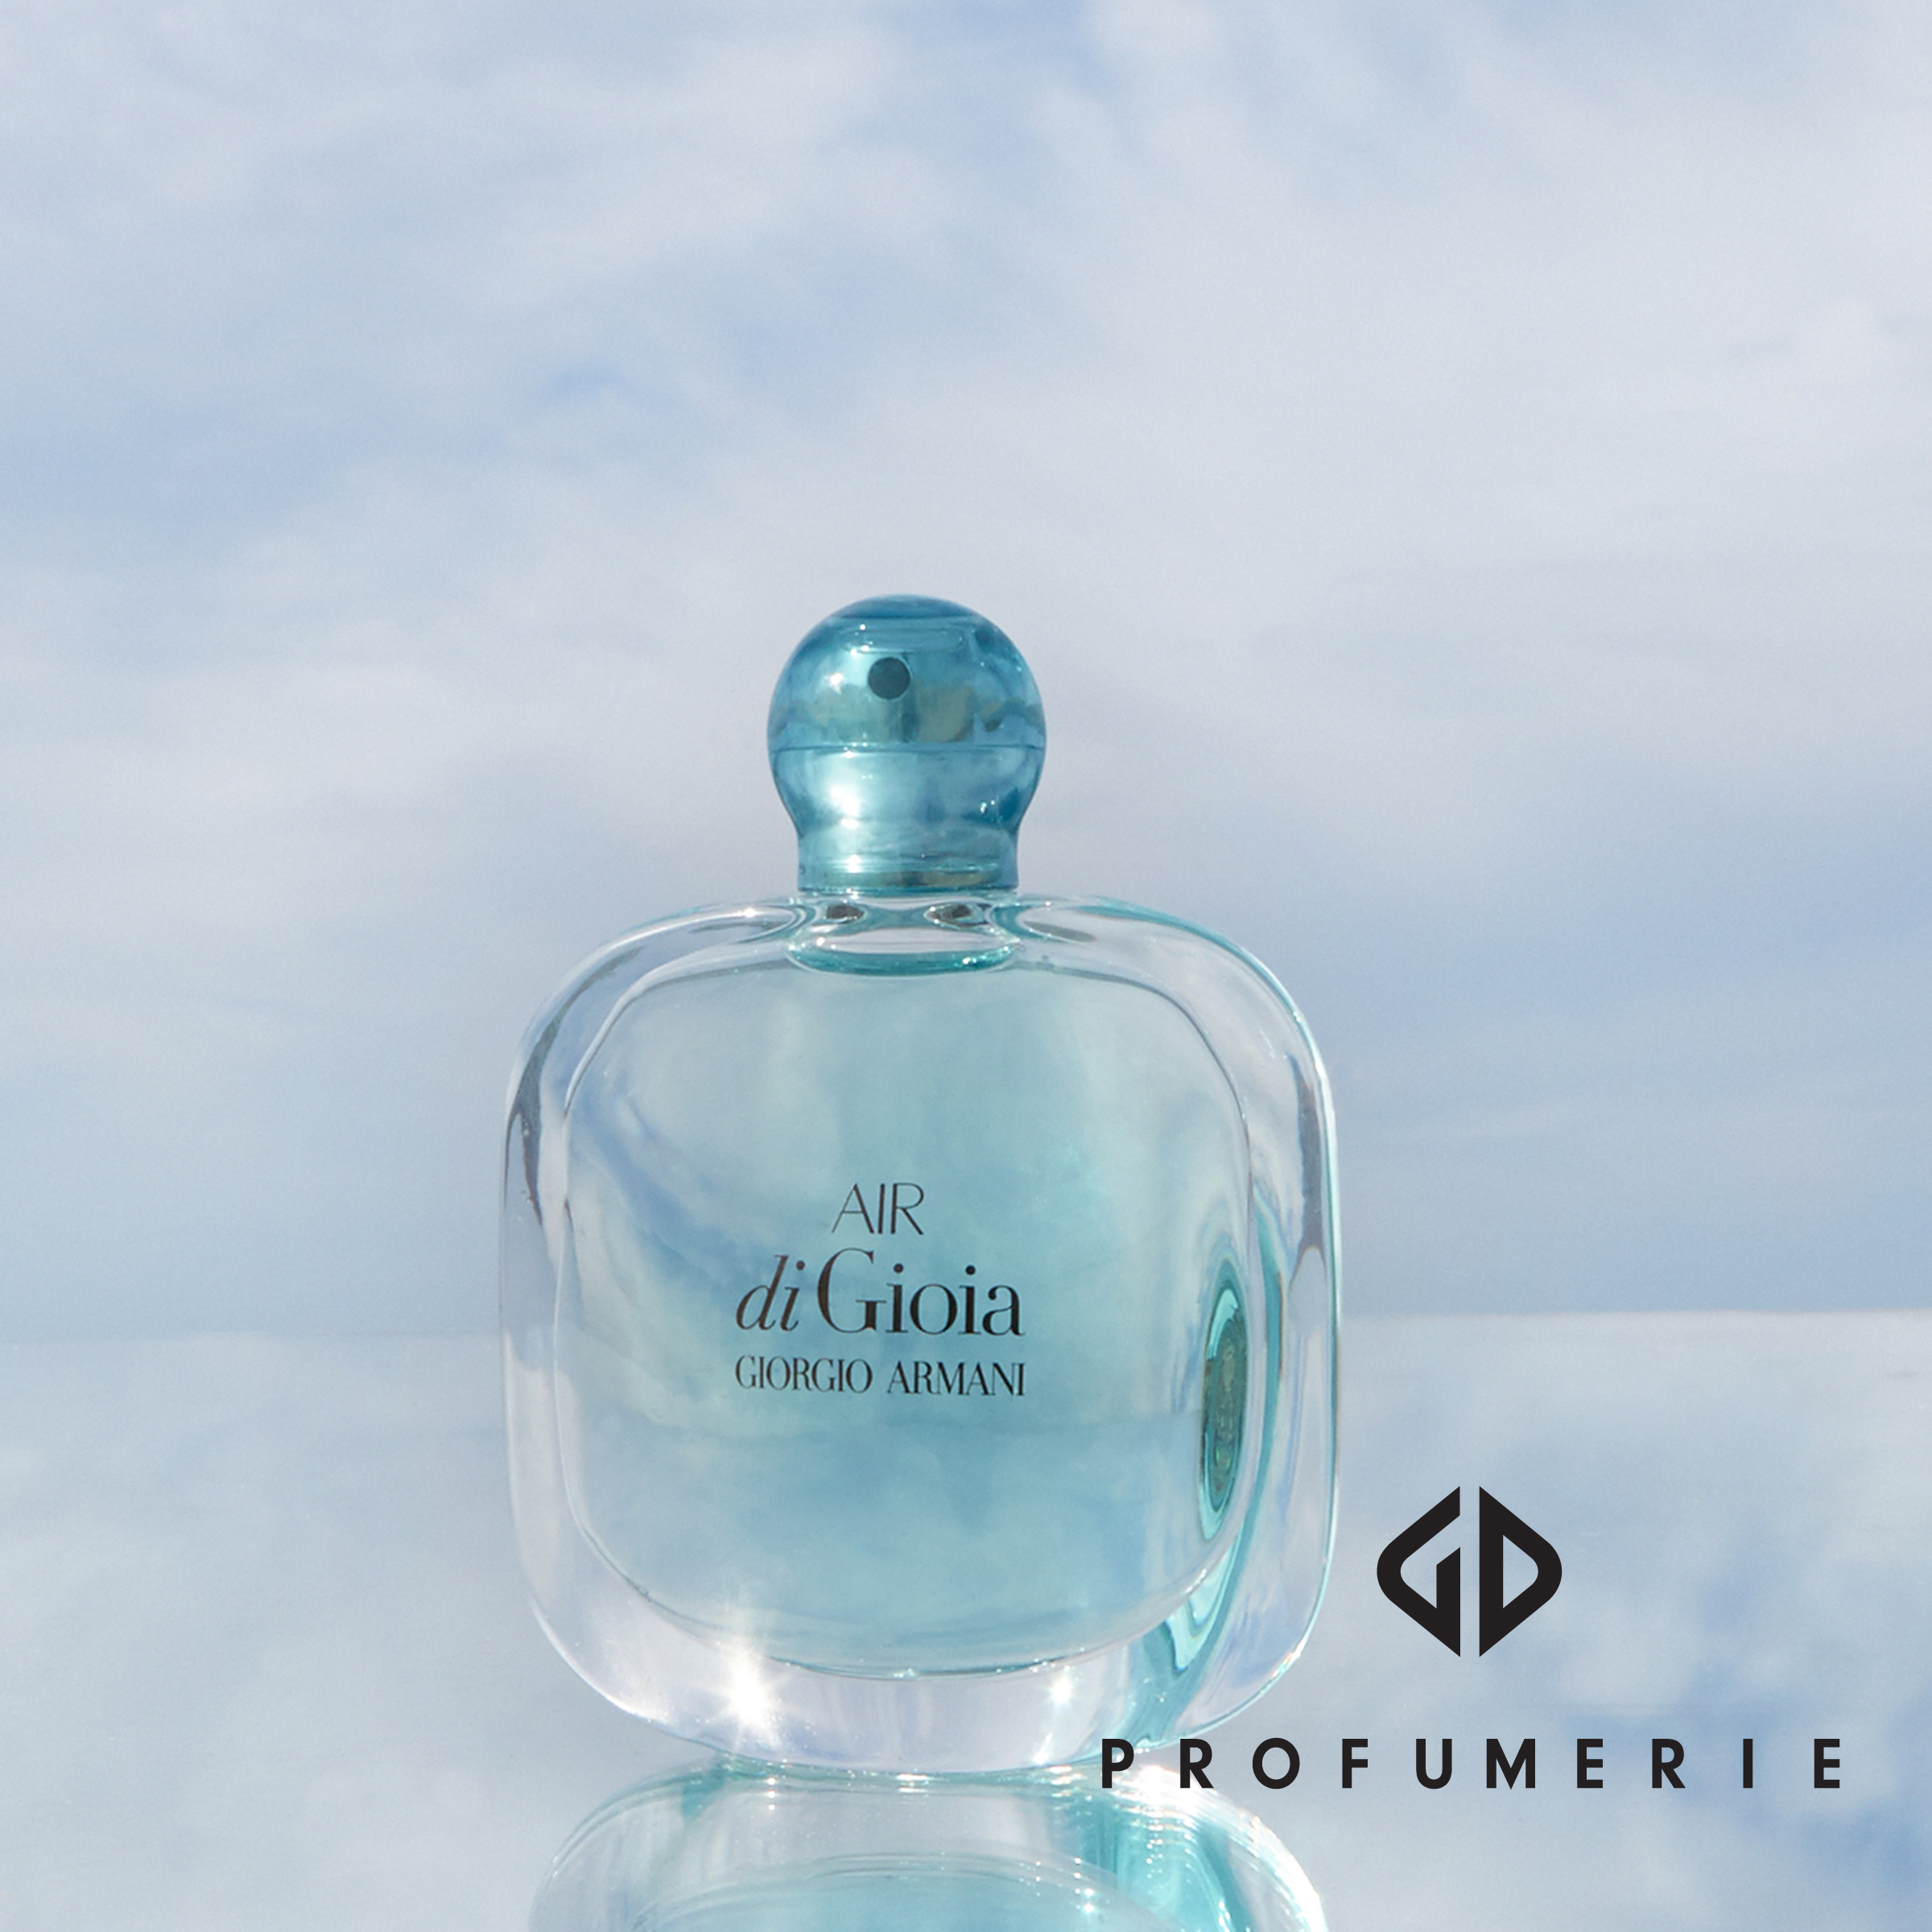 armani air di gioia gd profumerie website